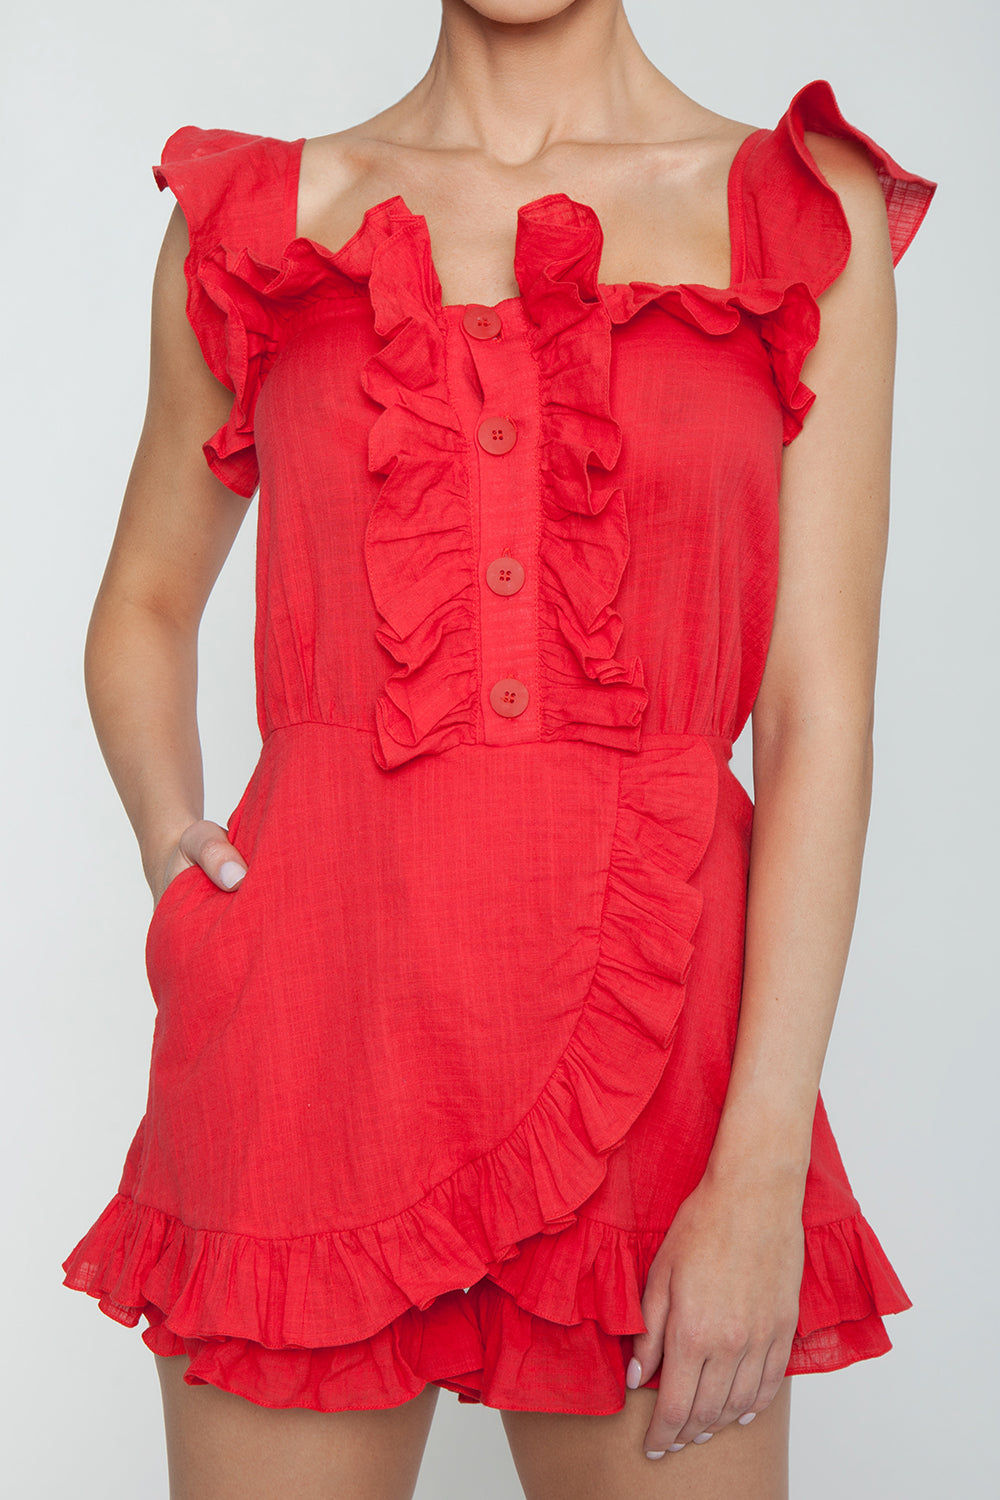 CLUBE BOSSA Follina Ruffle Romper - Pepper Red Romper | Pepper Red| Clube Bossa Follina Ruffle Romper - Pepper Red Ruffle romper Straight neckline  Ruffle sleeves Ruffle front detail  Front button closure  Detail View